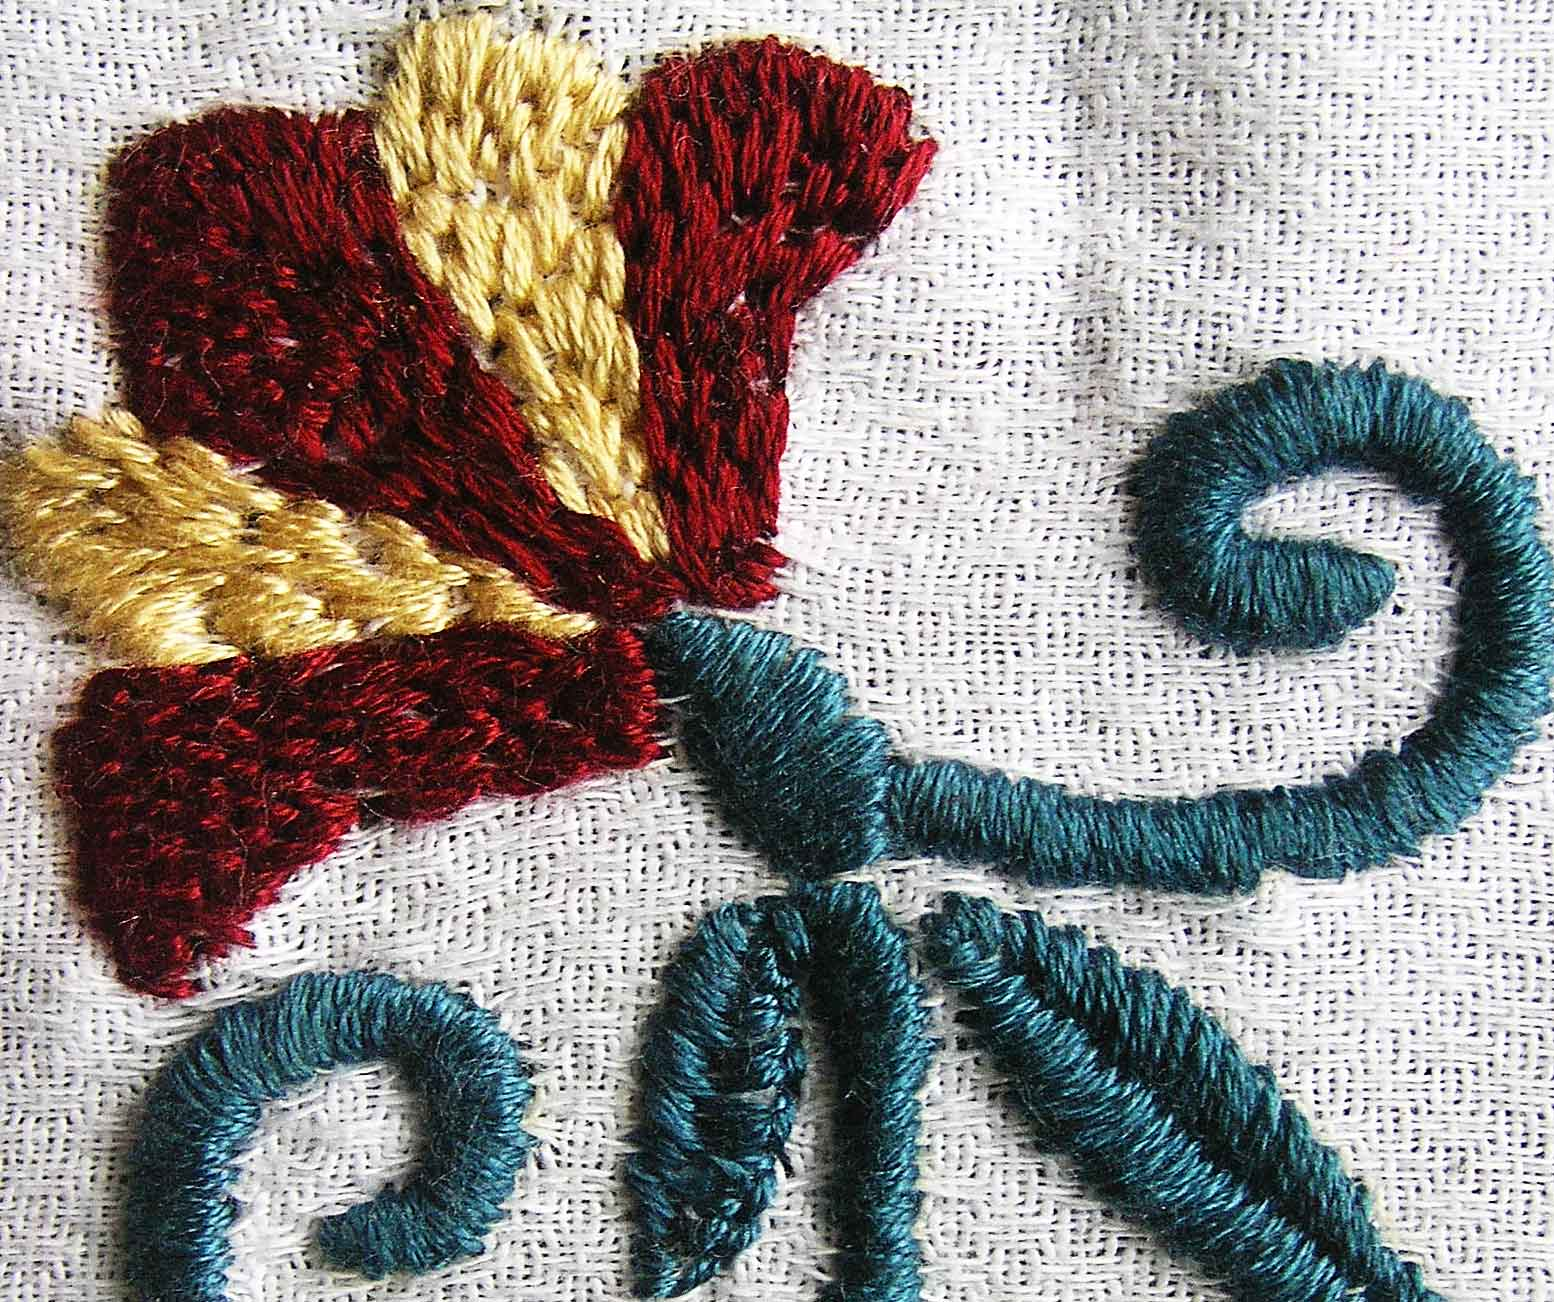 Whipped satin stitch sarah s hand embroidery tutorials